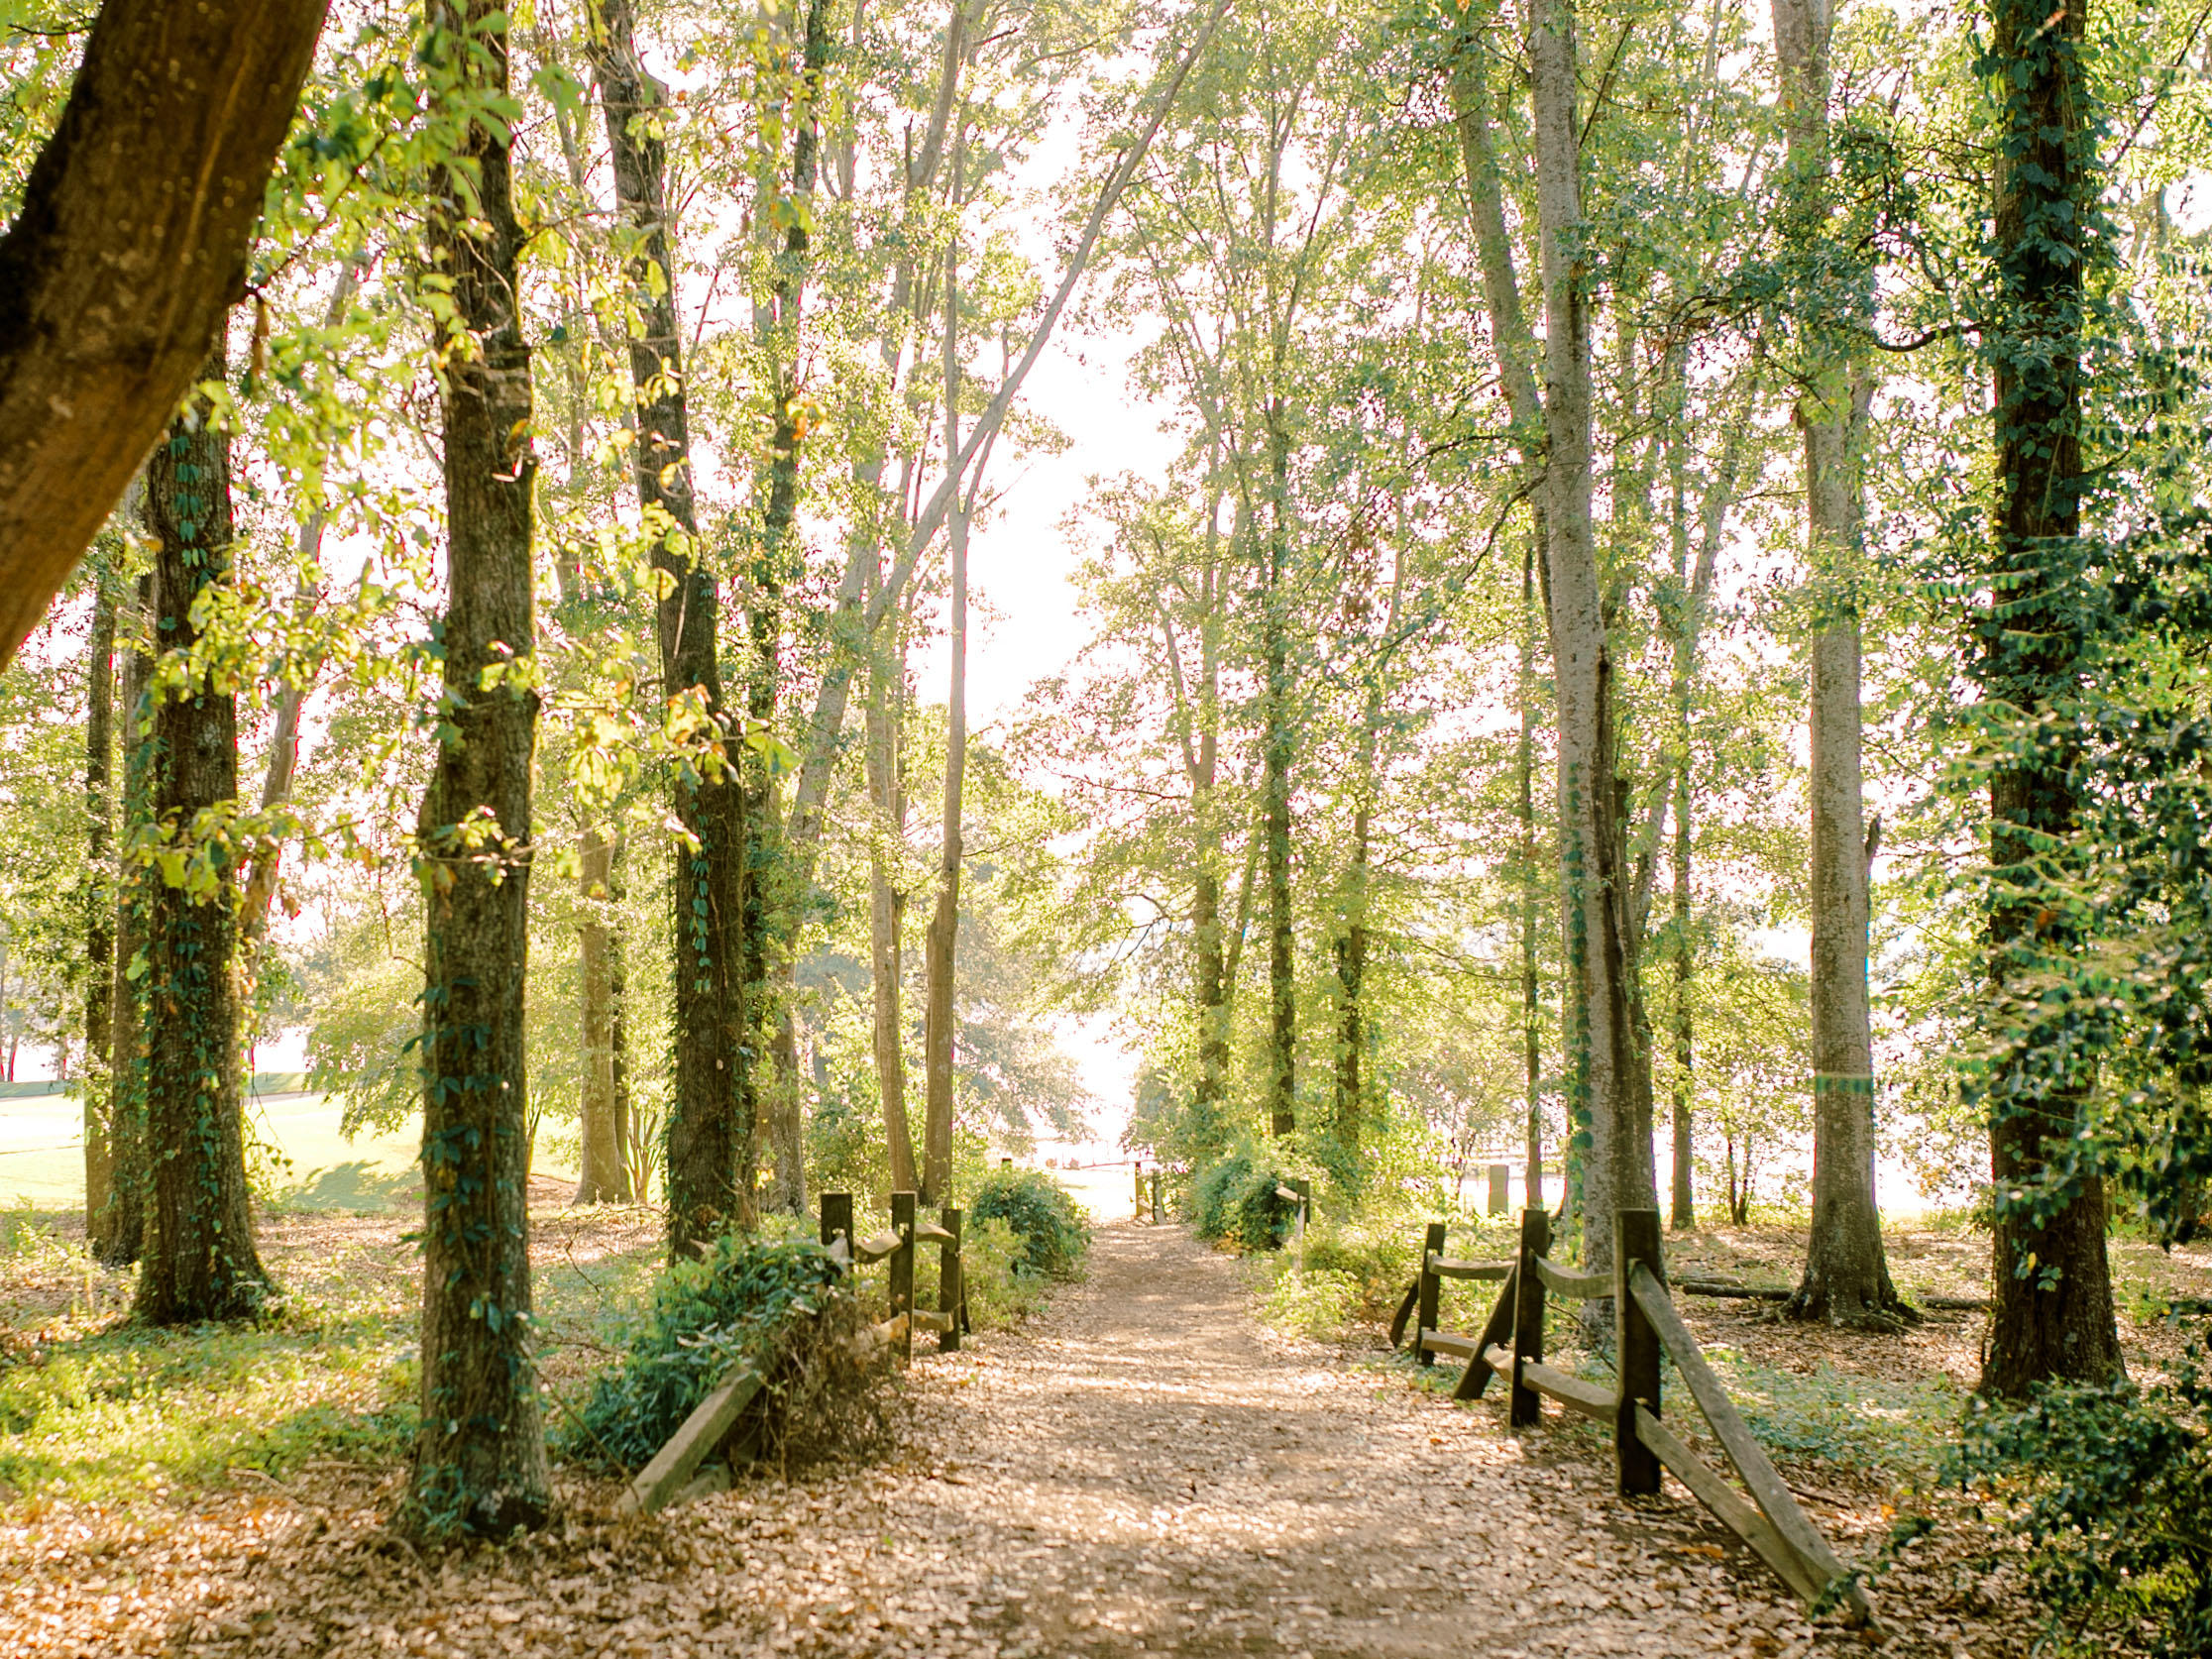 Trail with trees